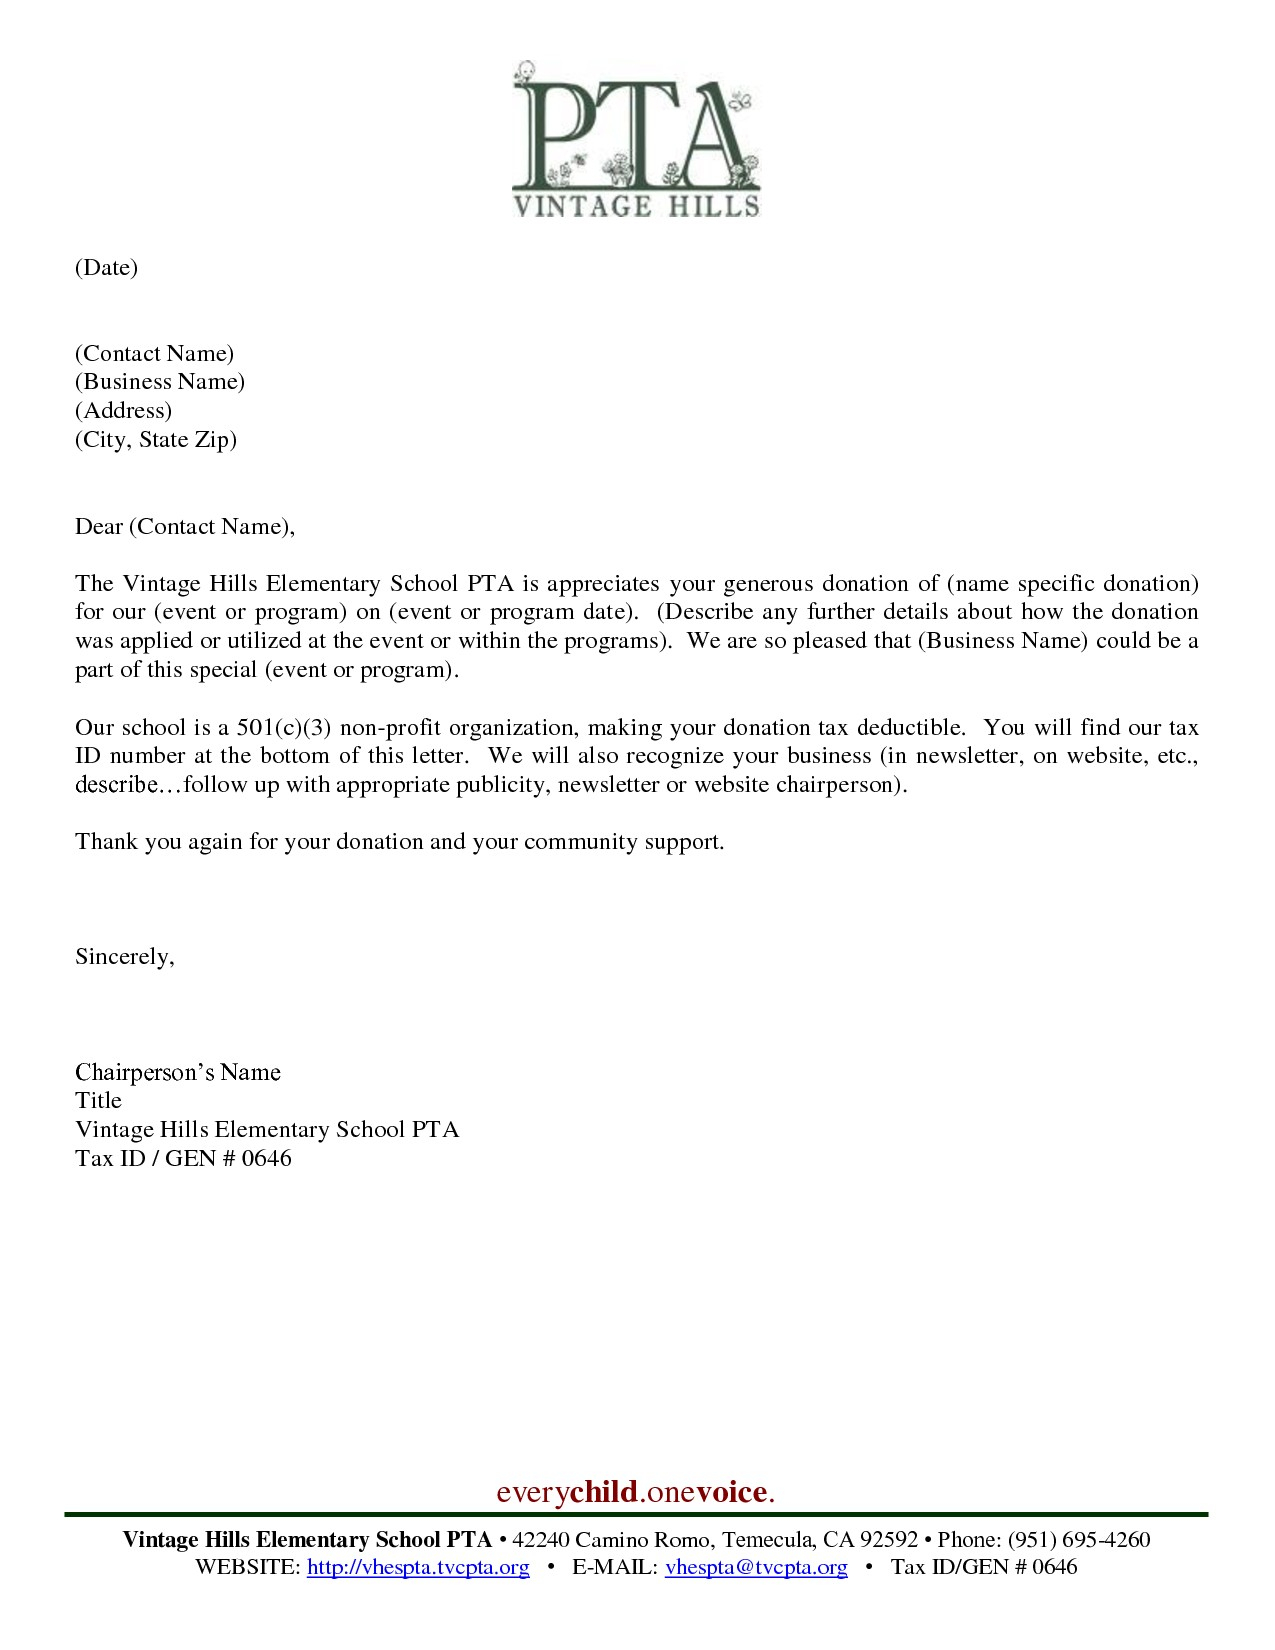 Charity Sponsorship Letter Template - Business Donation Letter Template Best Donor Thank You Letter Sample